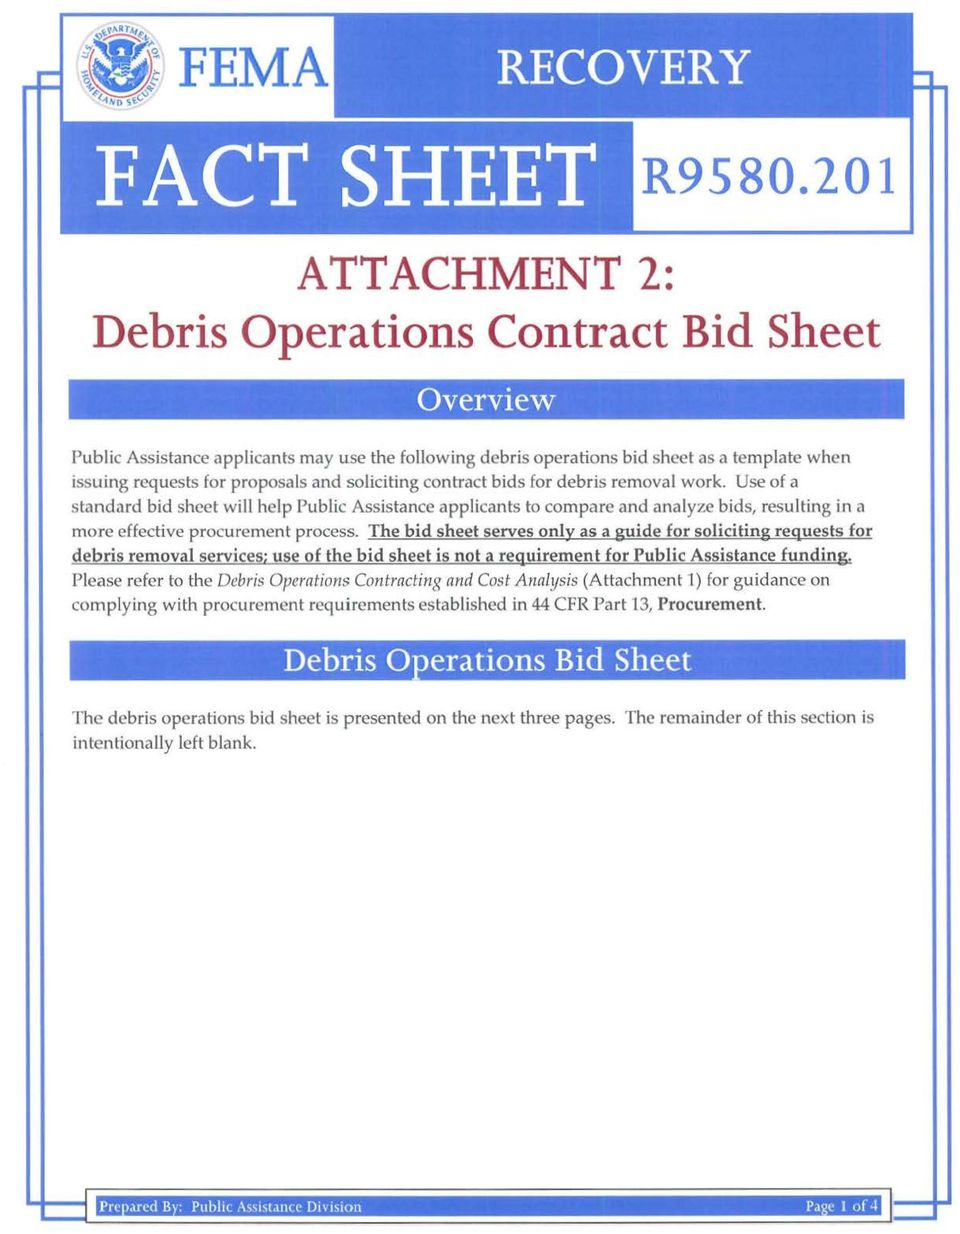 soliciting contract bids for debris removal work. Use of a standard bid sheet will help Public Assistance applicants to compare and analyze bids, resulting in a more effective procurement process.